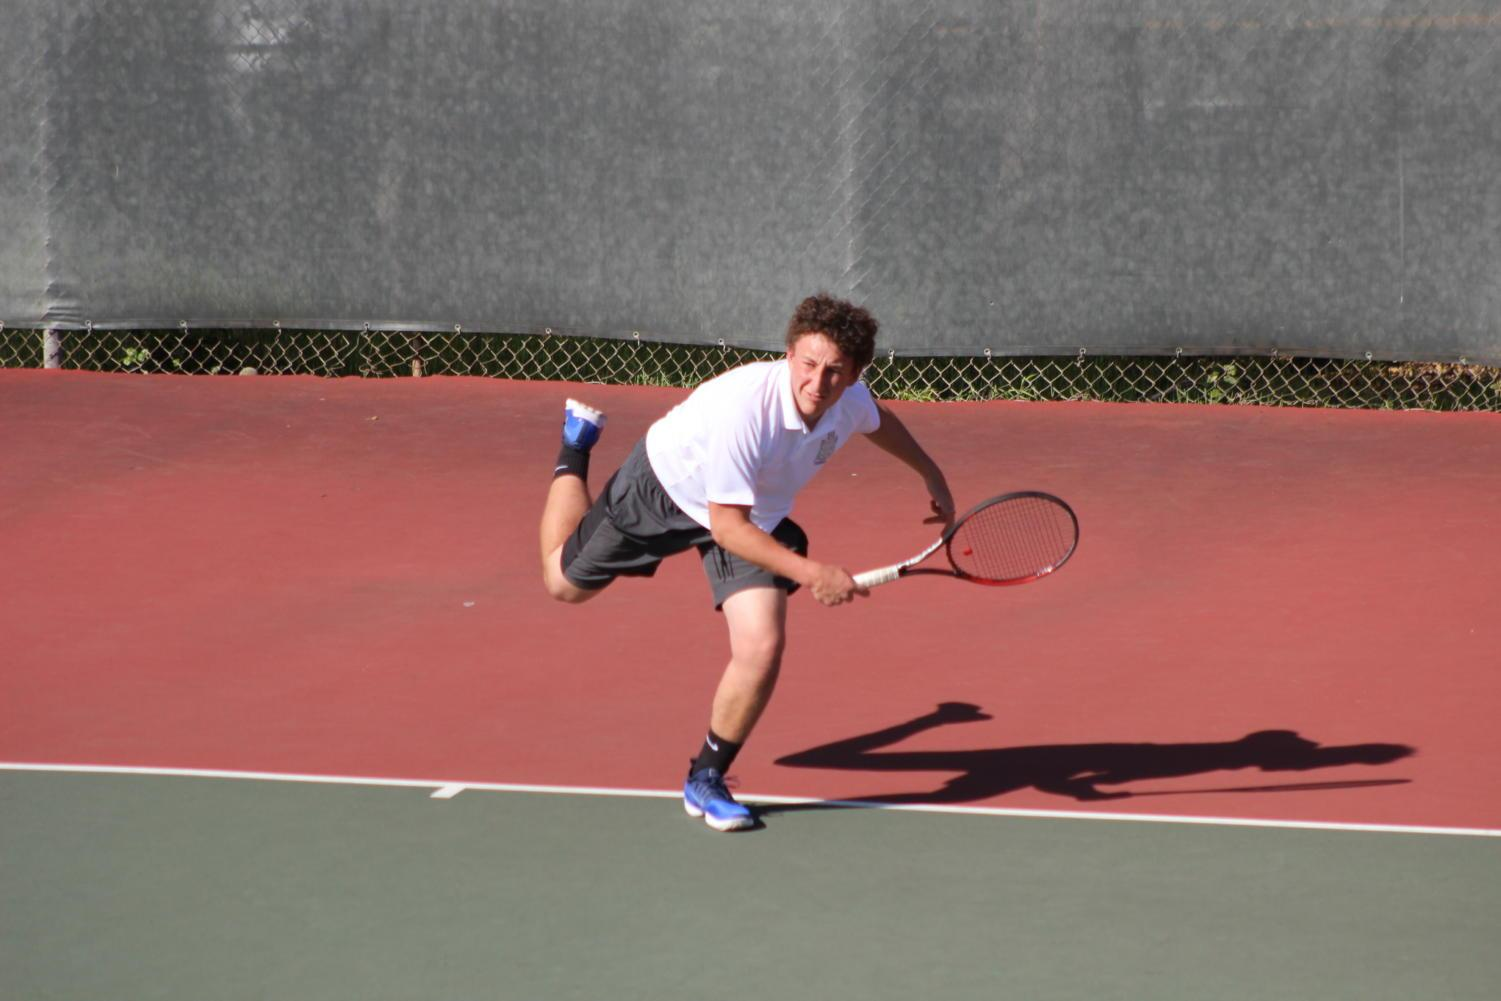 Sophomore Ben Barde serves the ball in his match against Woodside.